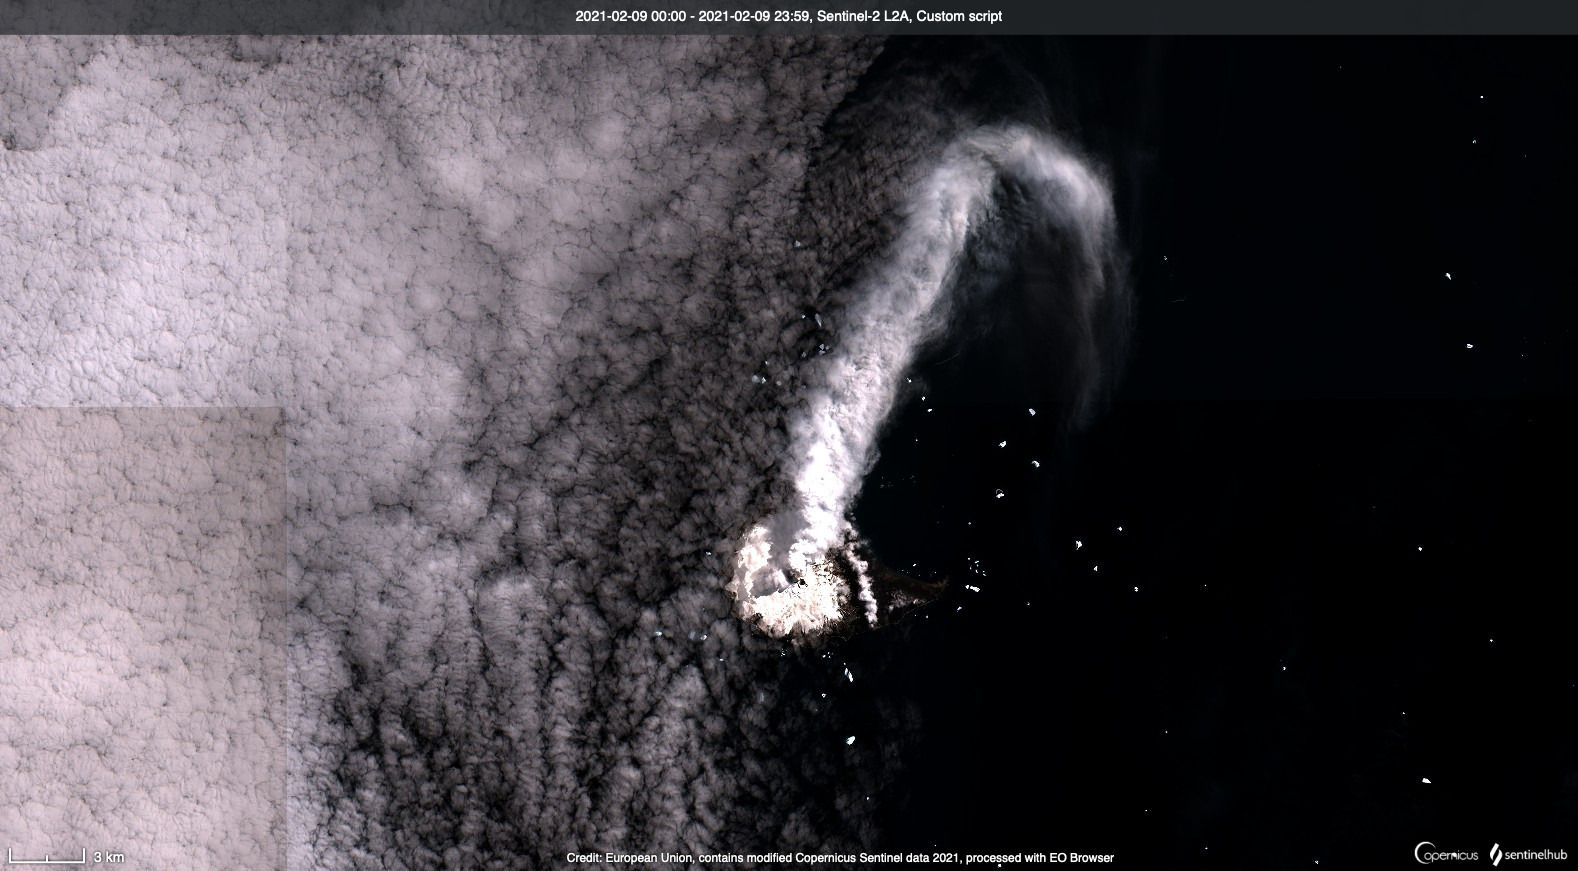 Mt. Michael - activity of 02.09.2021 - image Copernicus / Sentinel L2A custom scripts - one click to enlarge